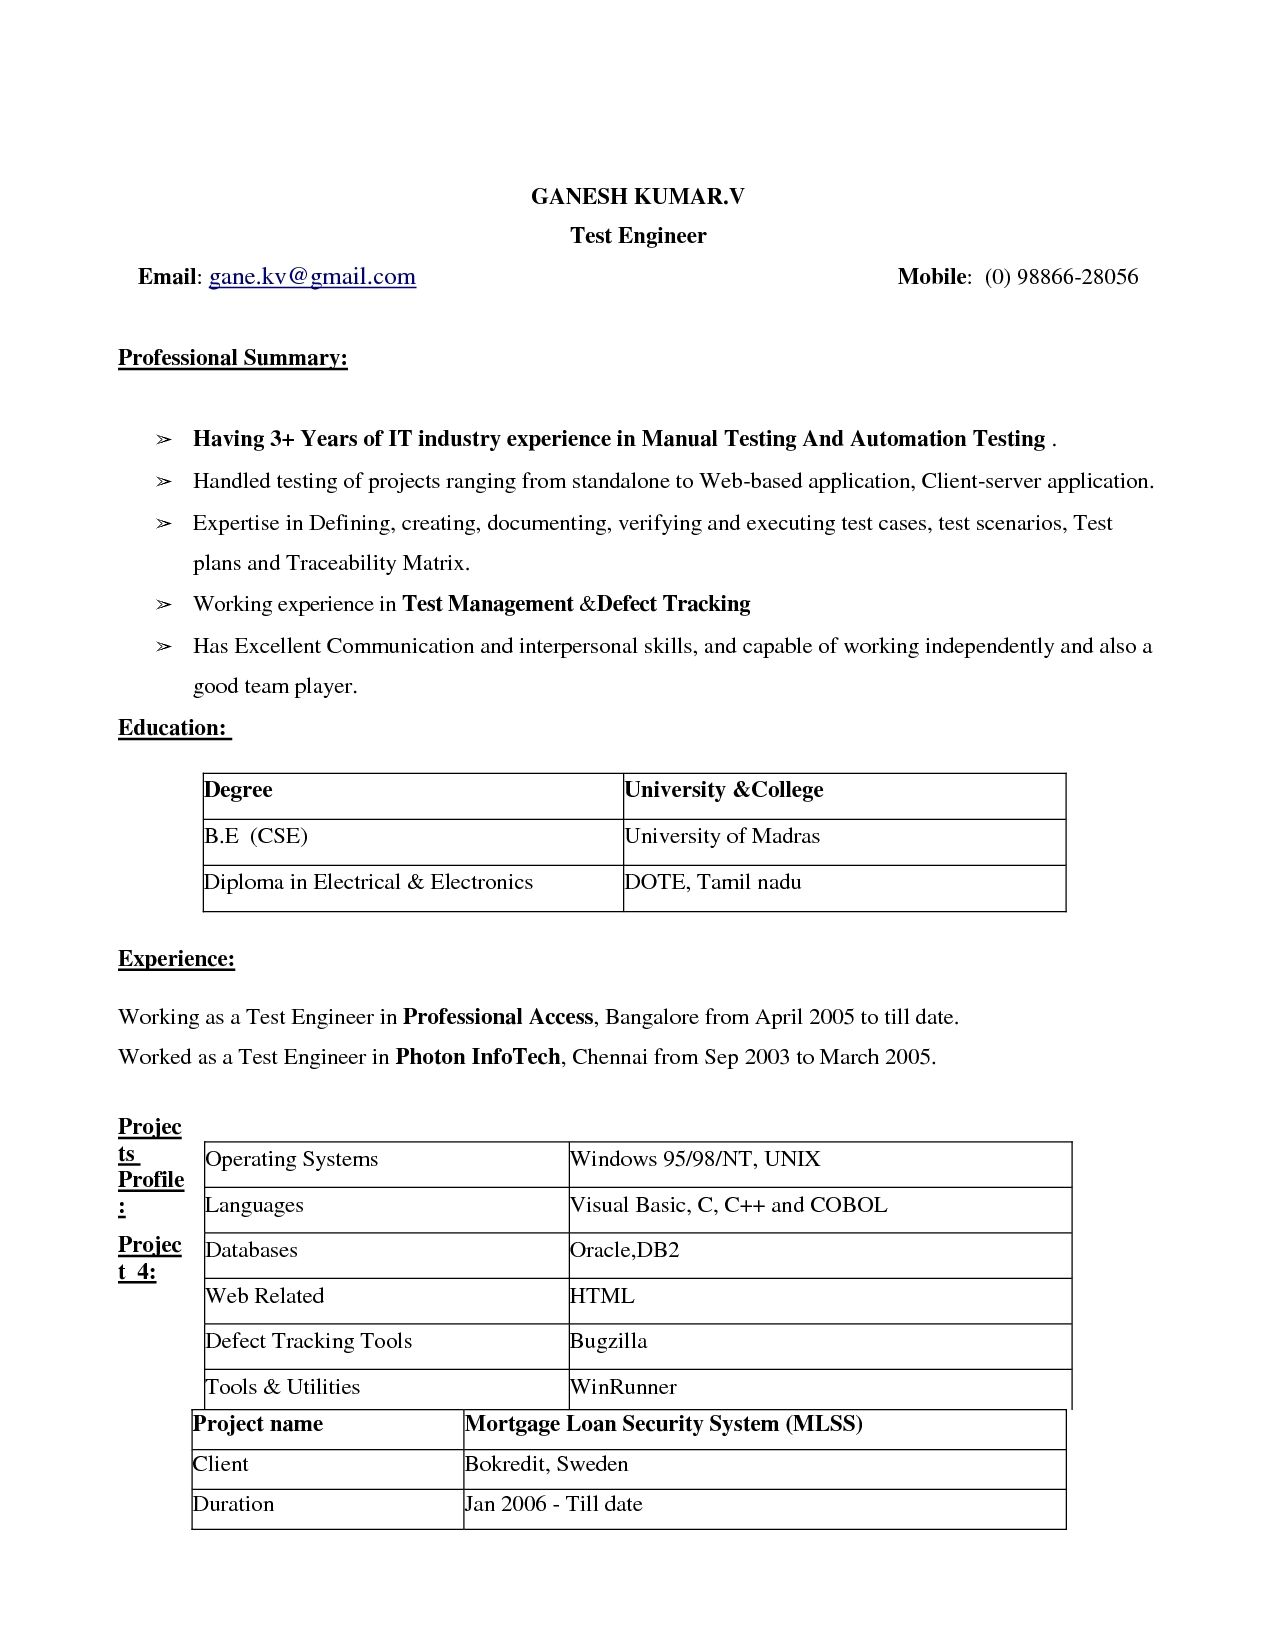 Resume Format Microsoft Word Delectable Resume Formats In Ms Word 9021Eaaae Best Ms Word Resume Format Inspiration